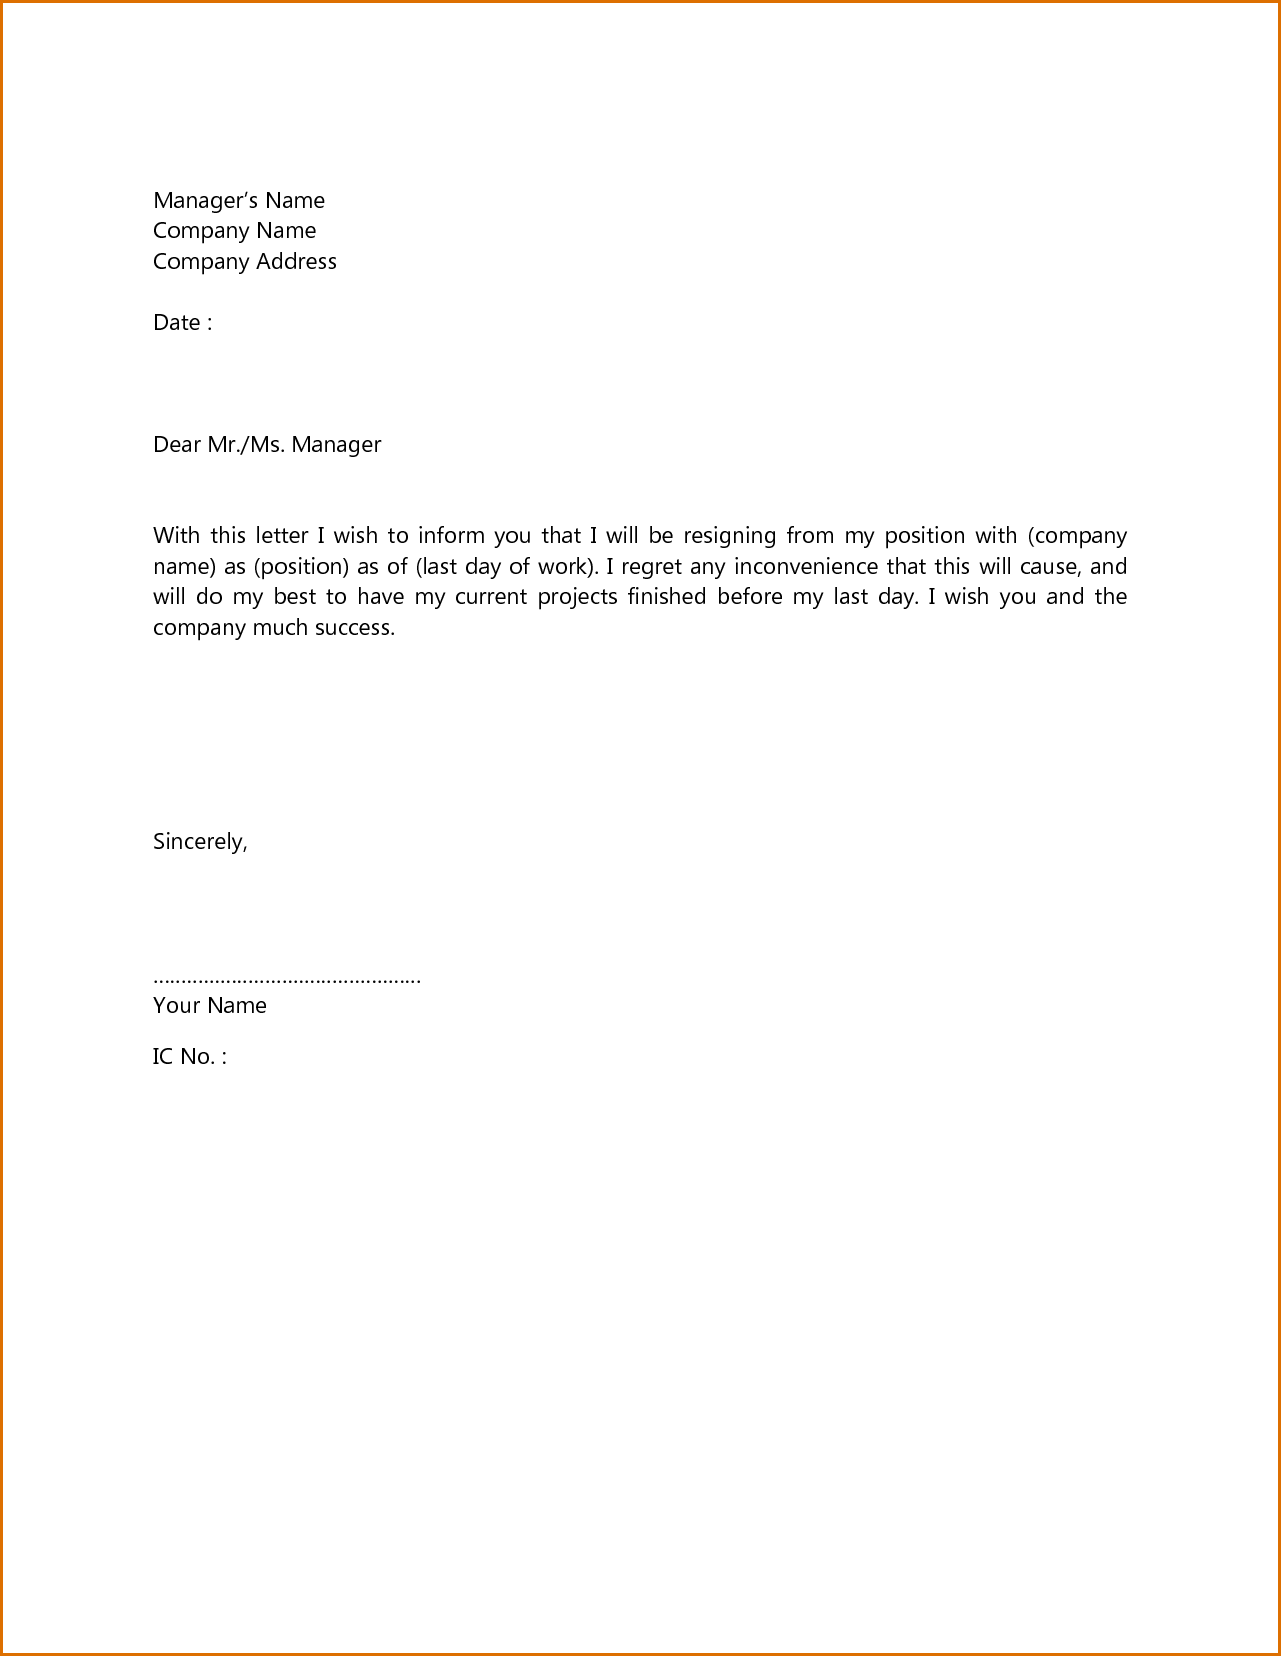 Job Resignation Letter Format  Model Resumed  DenJud